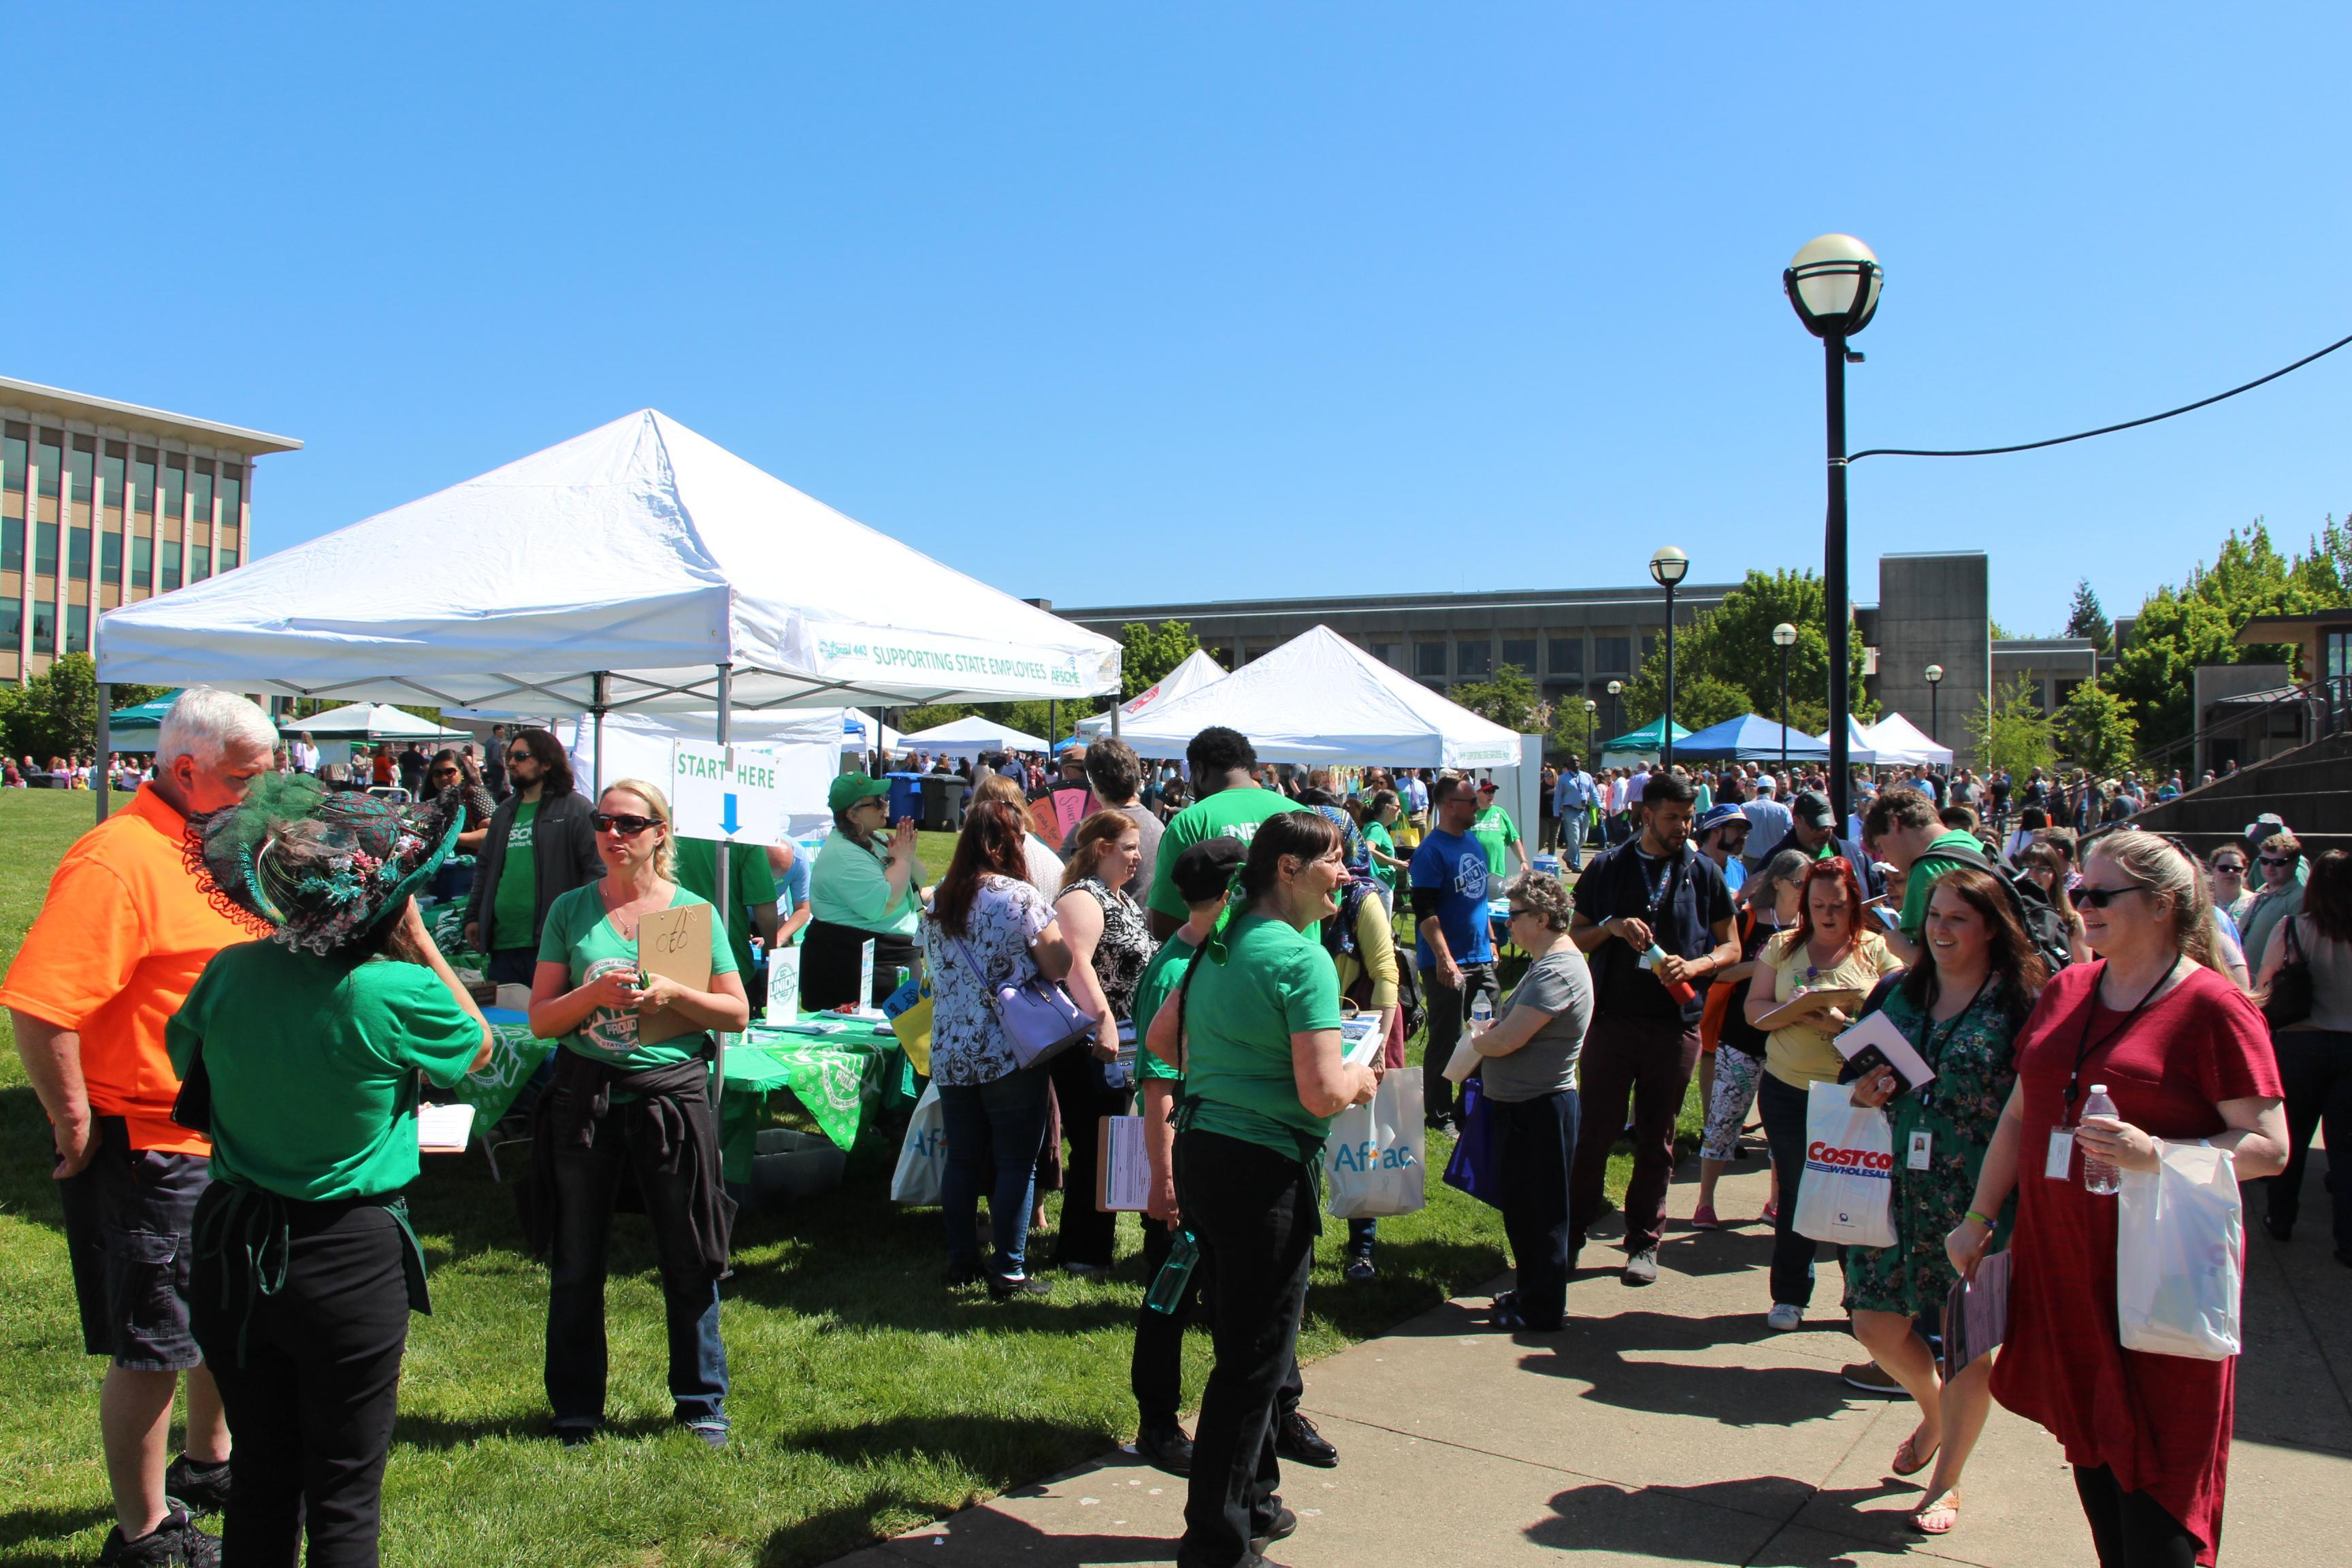 A crowd of public employees gather outside near tents.